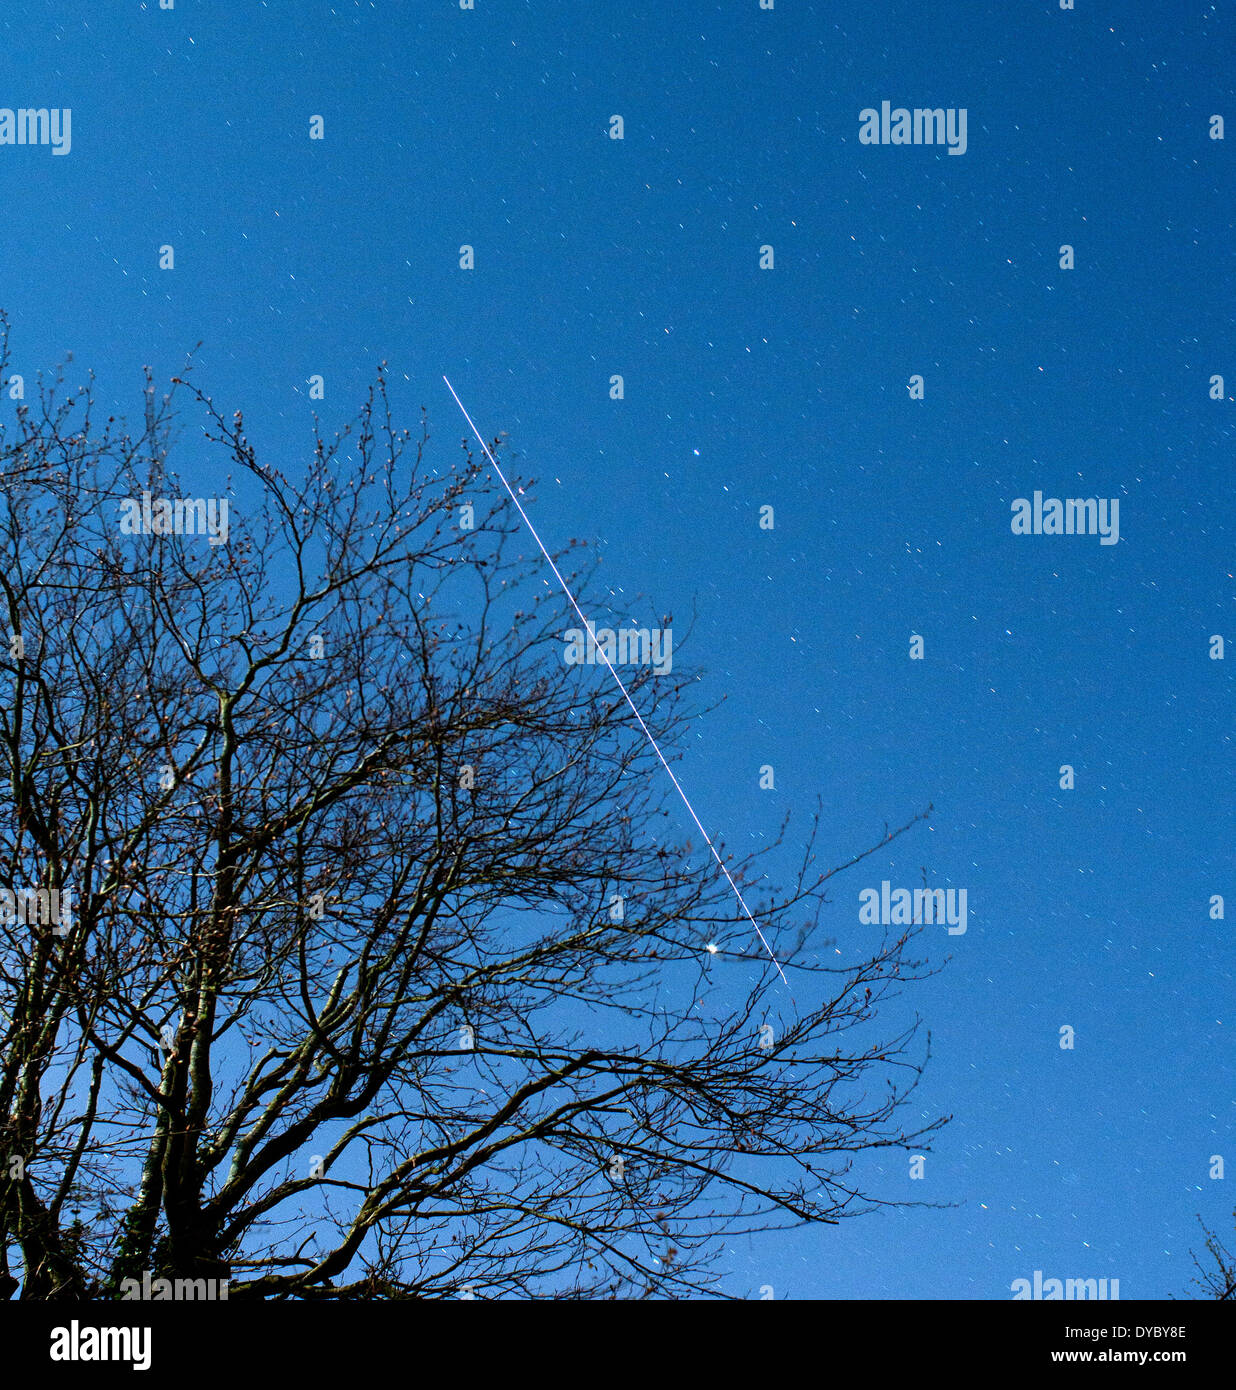 Aberystwyth, Wales, UK - With the full moon lightening the night sky, this time exposure shows the trail of the International Space Station over a 30 second period as it crosses the UK, with the branches of a beech tree in the foreground  - 13-April-2014, Photo Credit: John Gilbey/Alamy Live News. - Stock Image